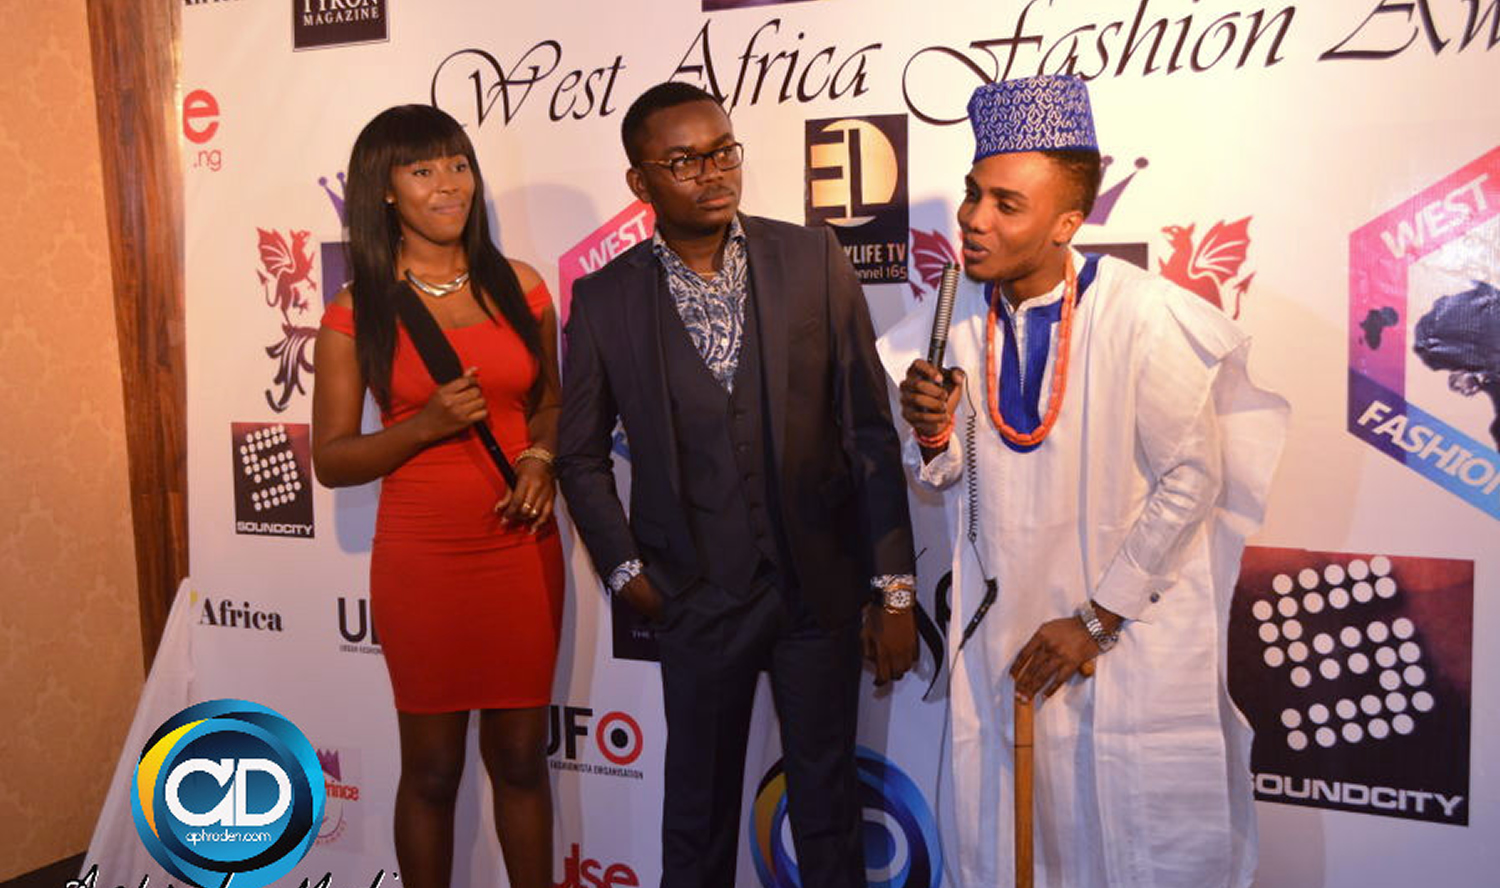 West Africa Fashion Awards